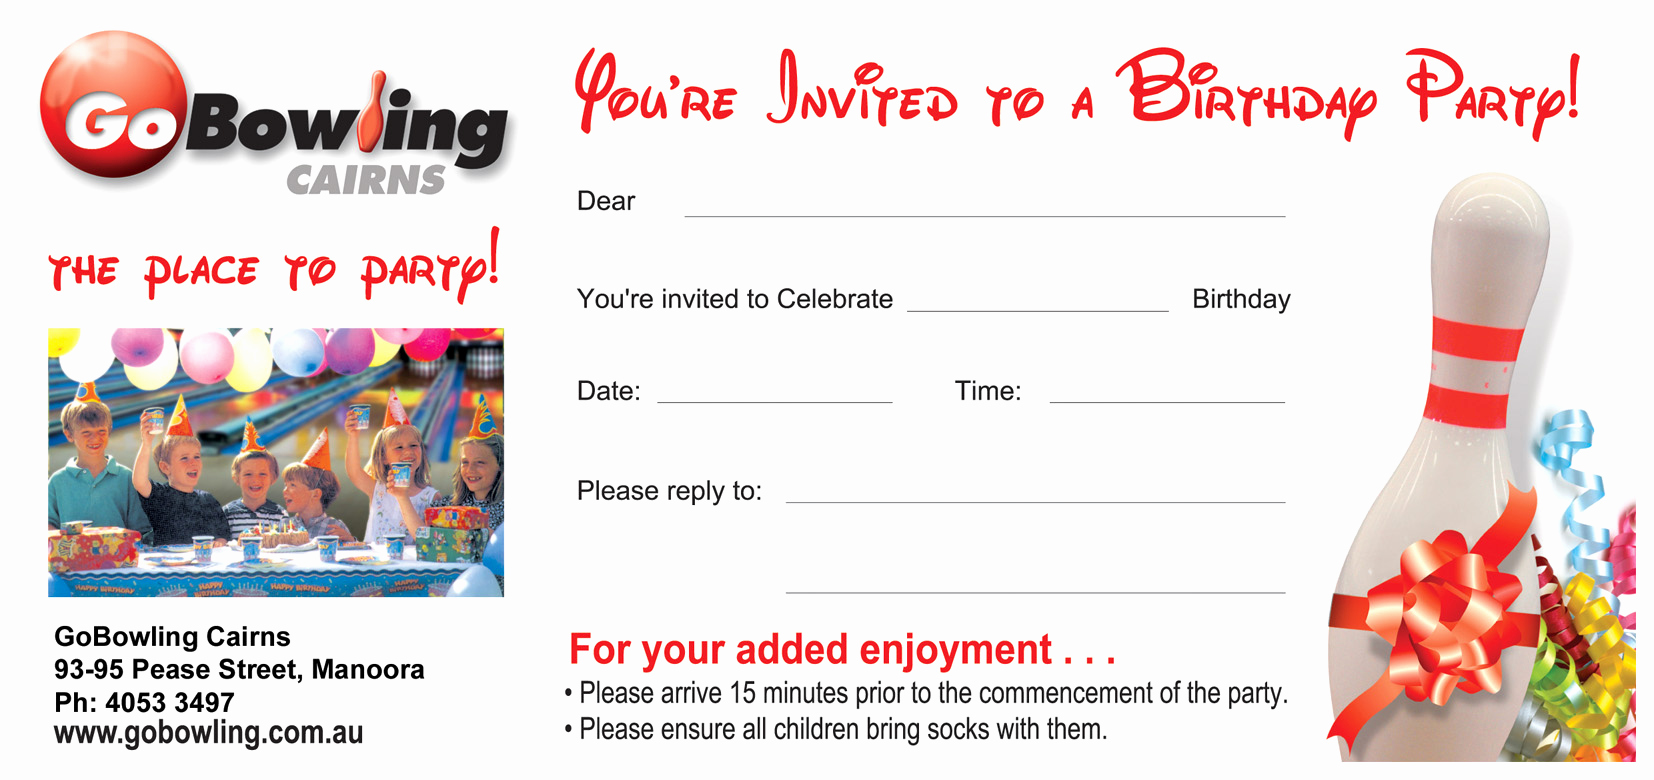 Bowling Party Invitation Templates Free Unique Bowling Party Invitations Templates Ideas Bowling Party